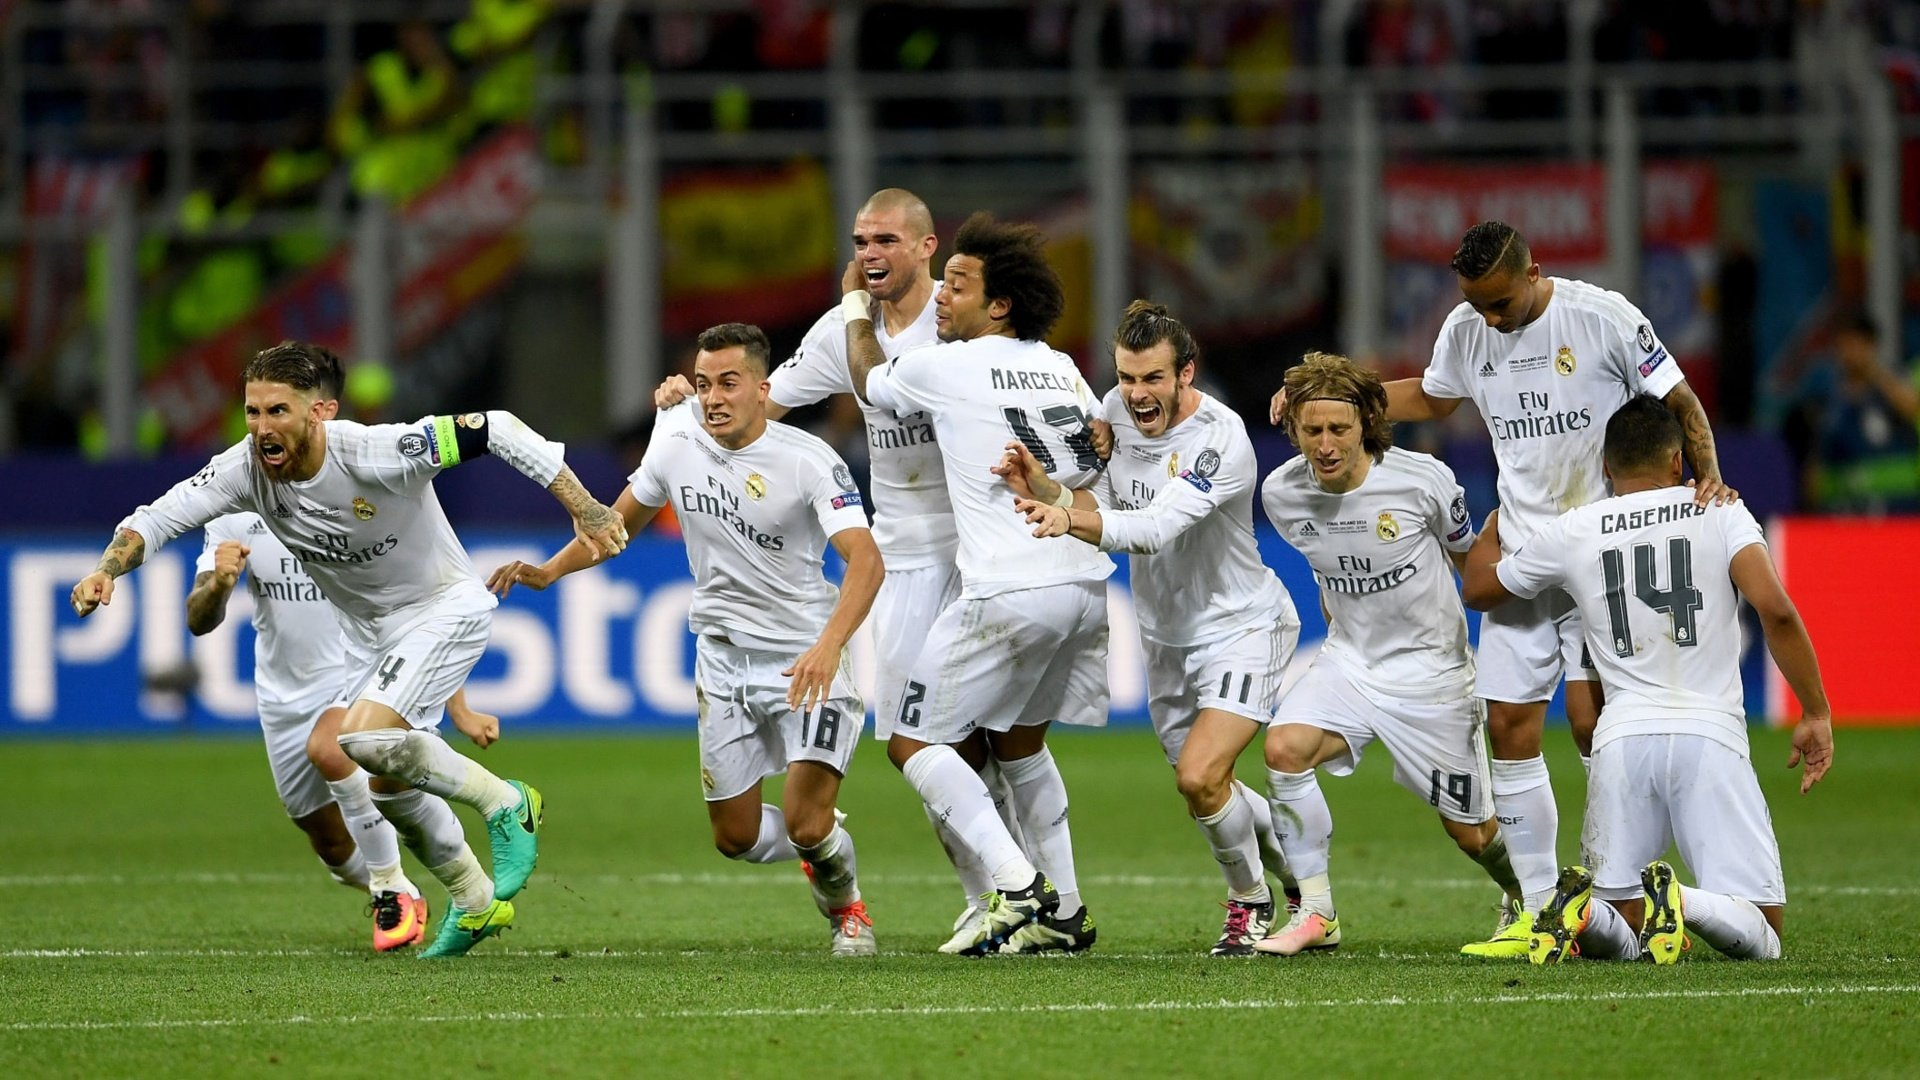 Highlights: Penalty drama in Milan – La Undécima 4 years ago today